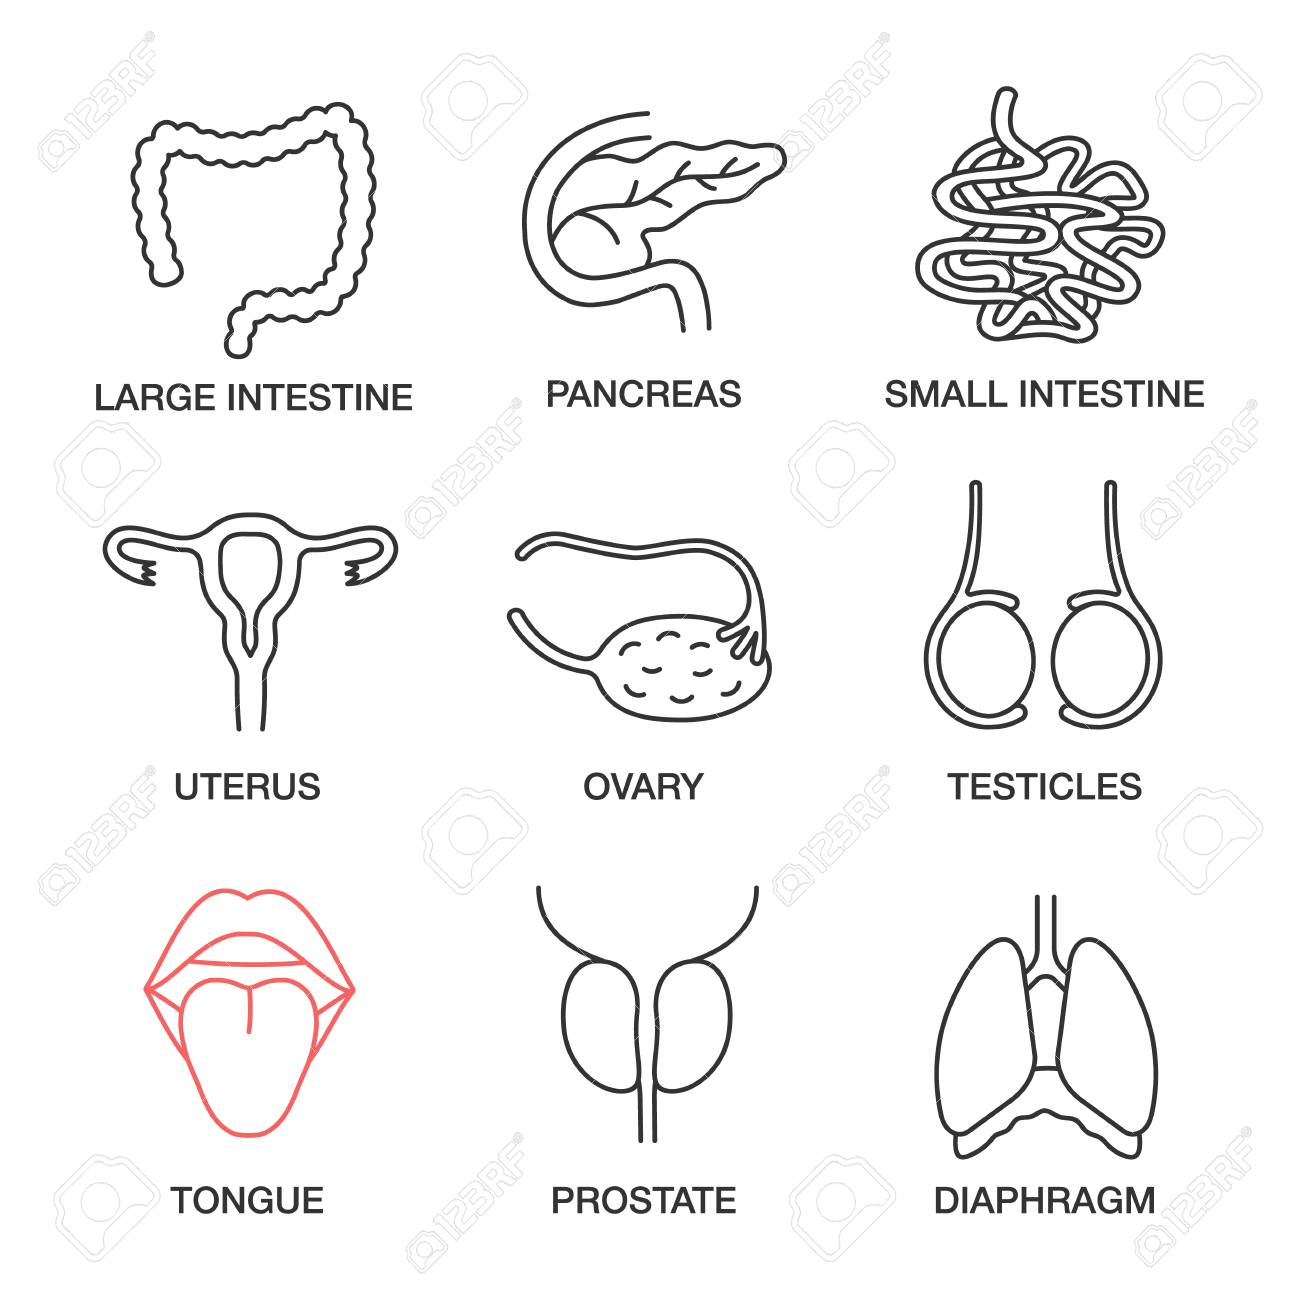 Internal organs linear icons set. Large and small intestine, pancreas, uterus, ovary, testicles, tongue, prostate, diaphragm. Thin line contour symbols. Isolated vector outline illustrations - 104665616